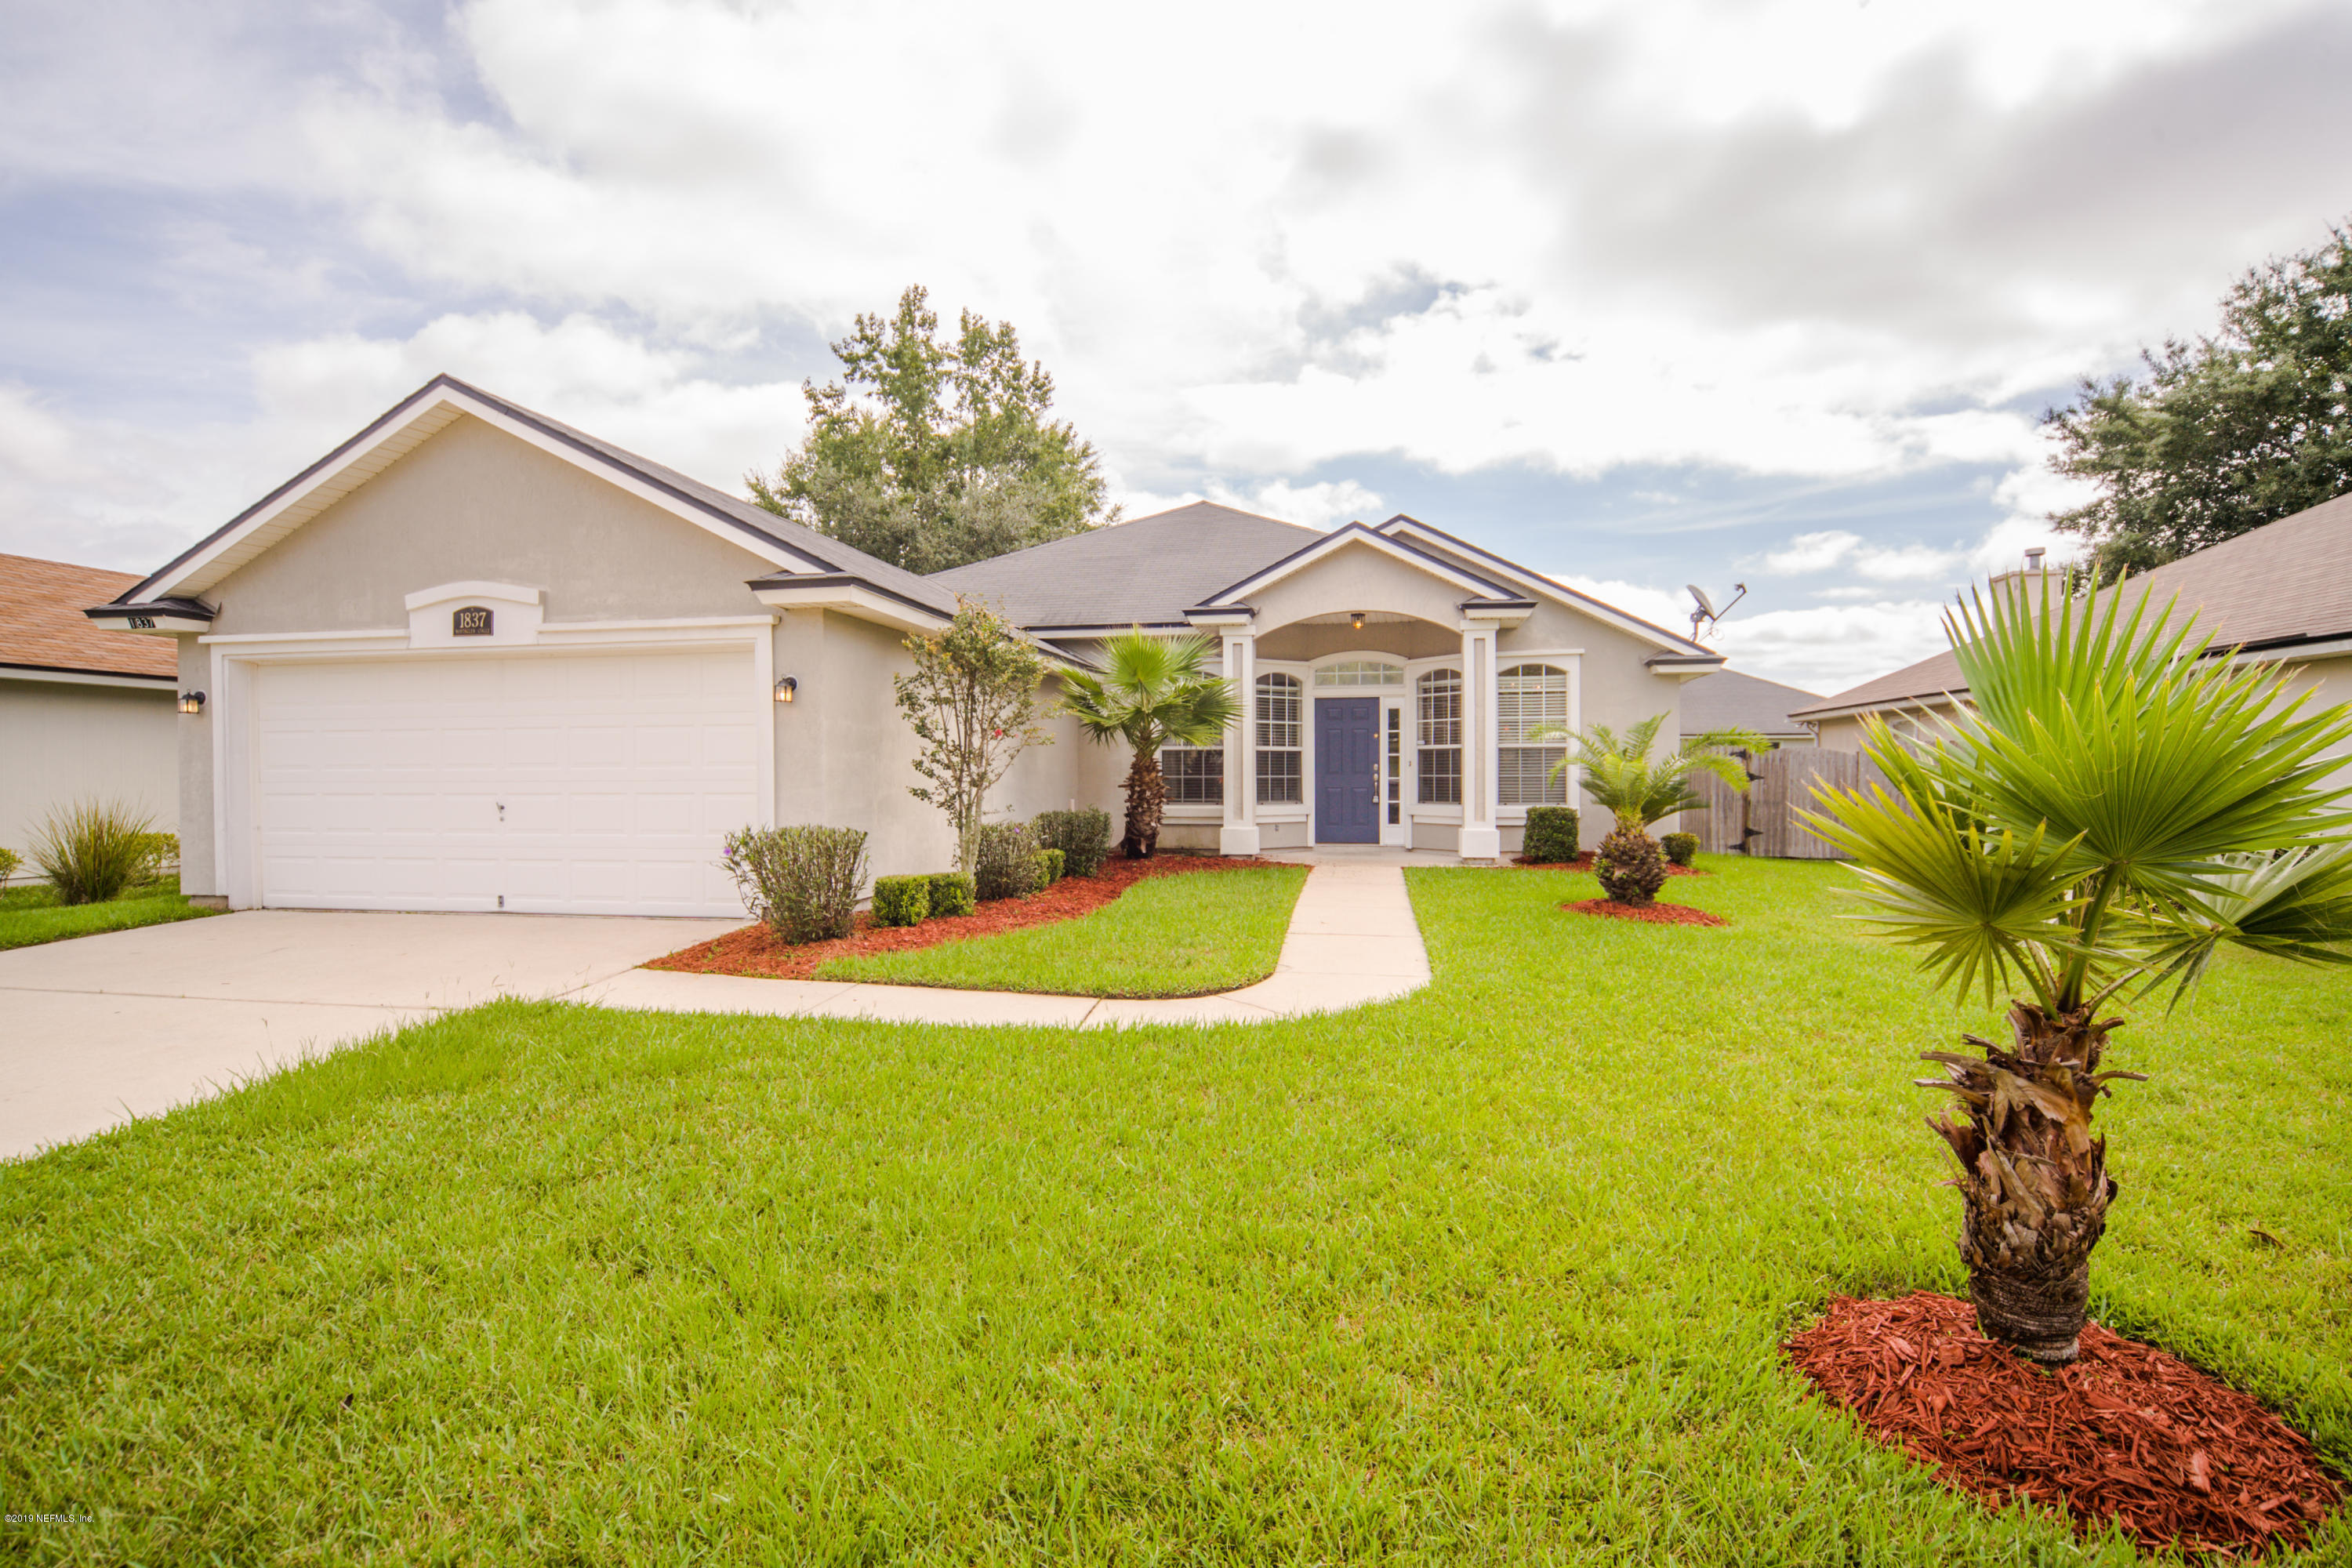 Photo of 1837 NORTHGLEN, MIDDLEBURG, FL 32068